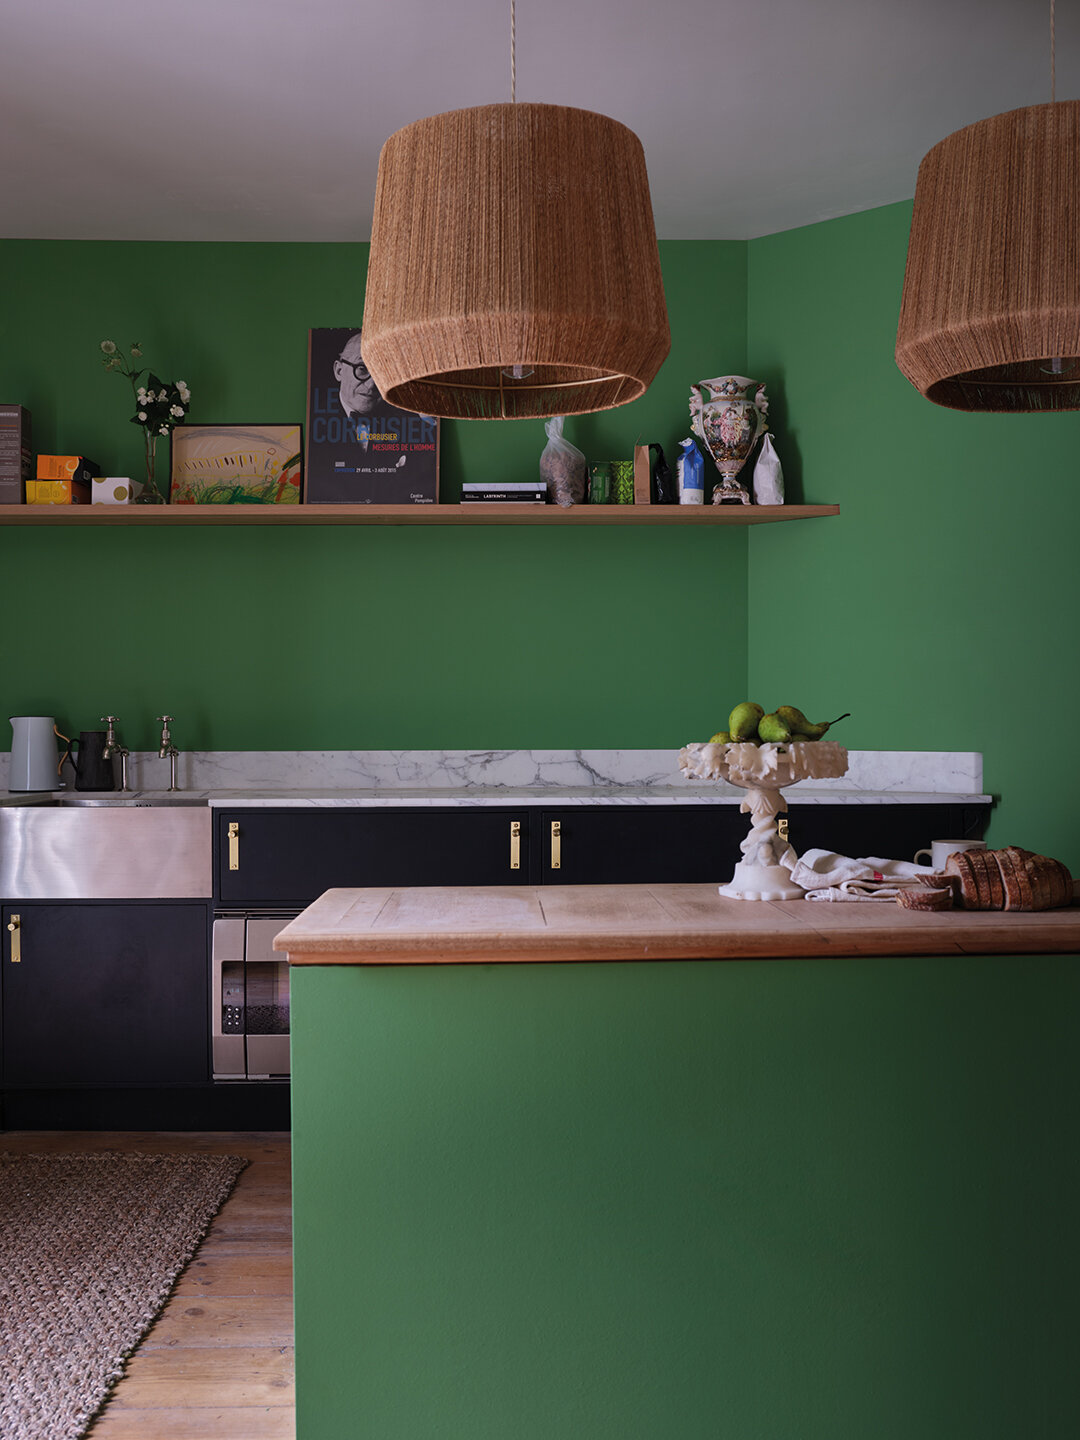 Farrow & Ball 'Verdigris Green'. Image Credit: Farrow & Ball